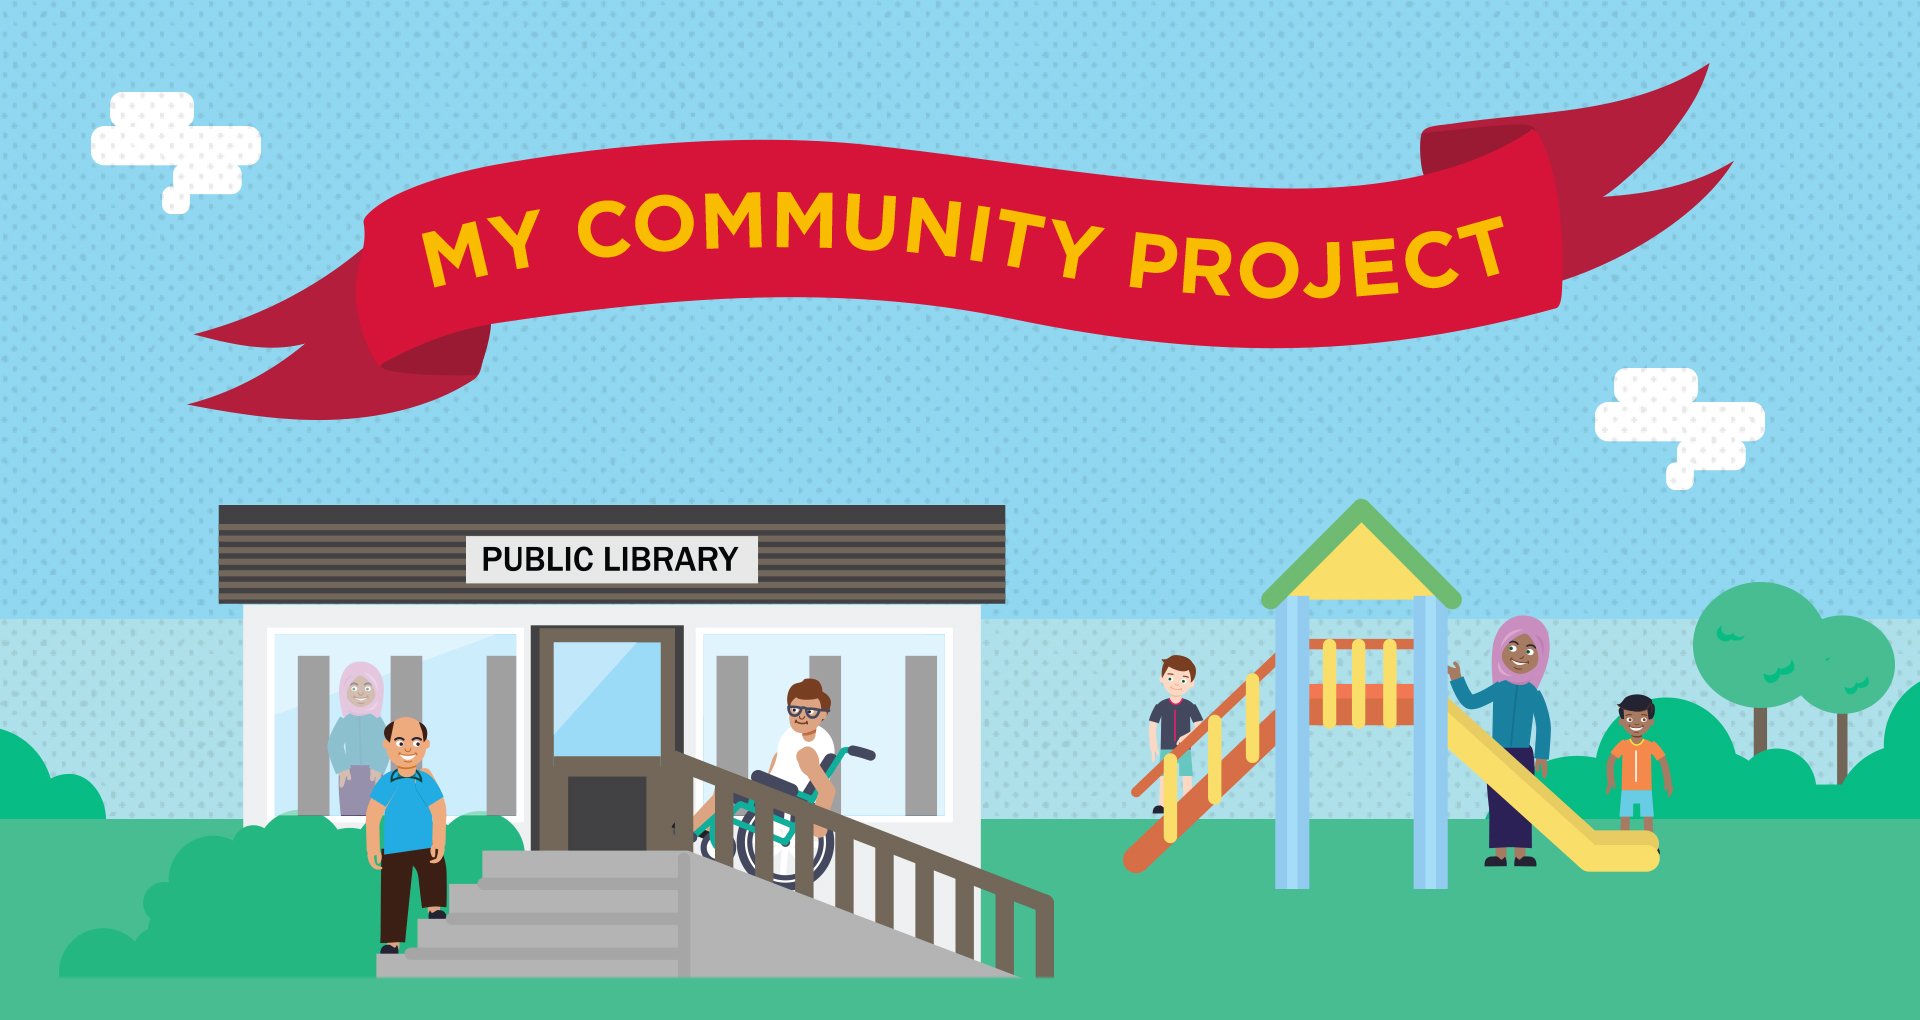 Nominations are now open for projects to be funded under the NSW Government's My Community Project.